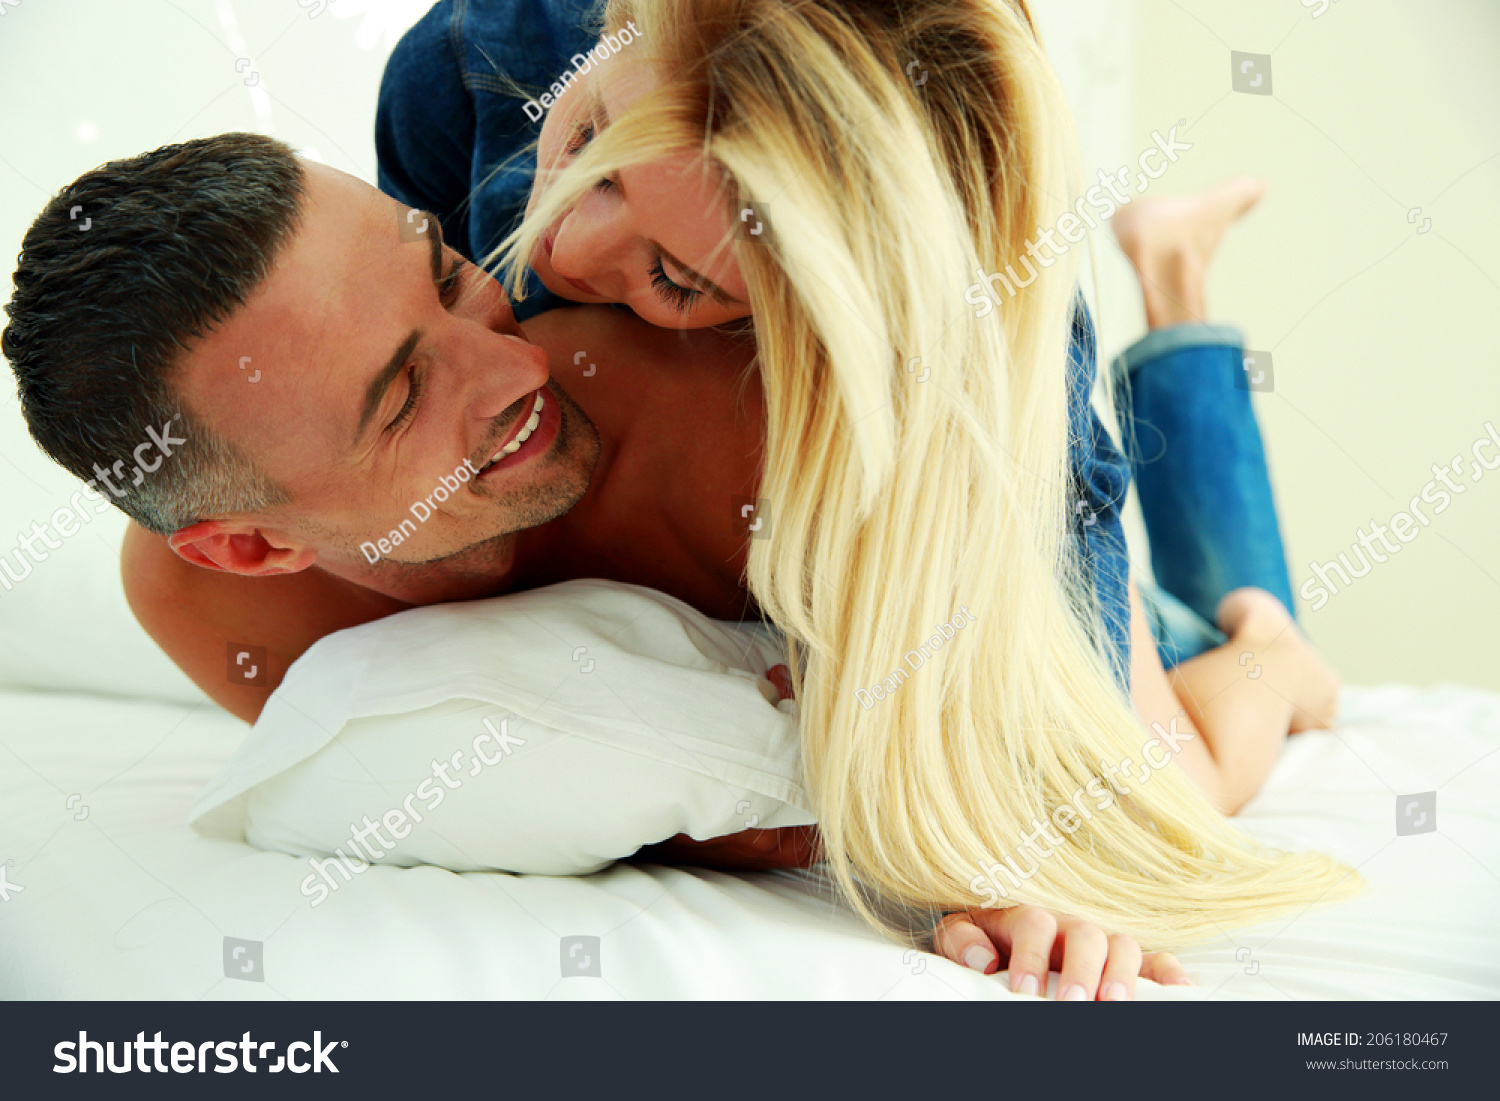 Young love couple in bed  romantic scene in bedroom. Young Love Couple Bed Romantic Scene Stock Photo 206180467